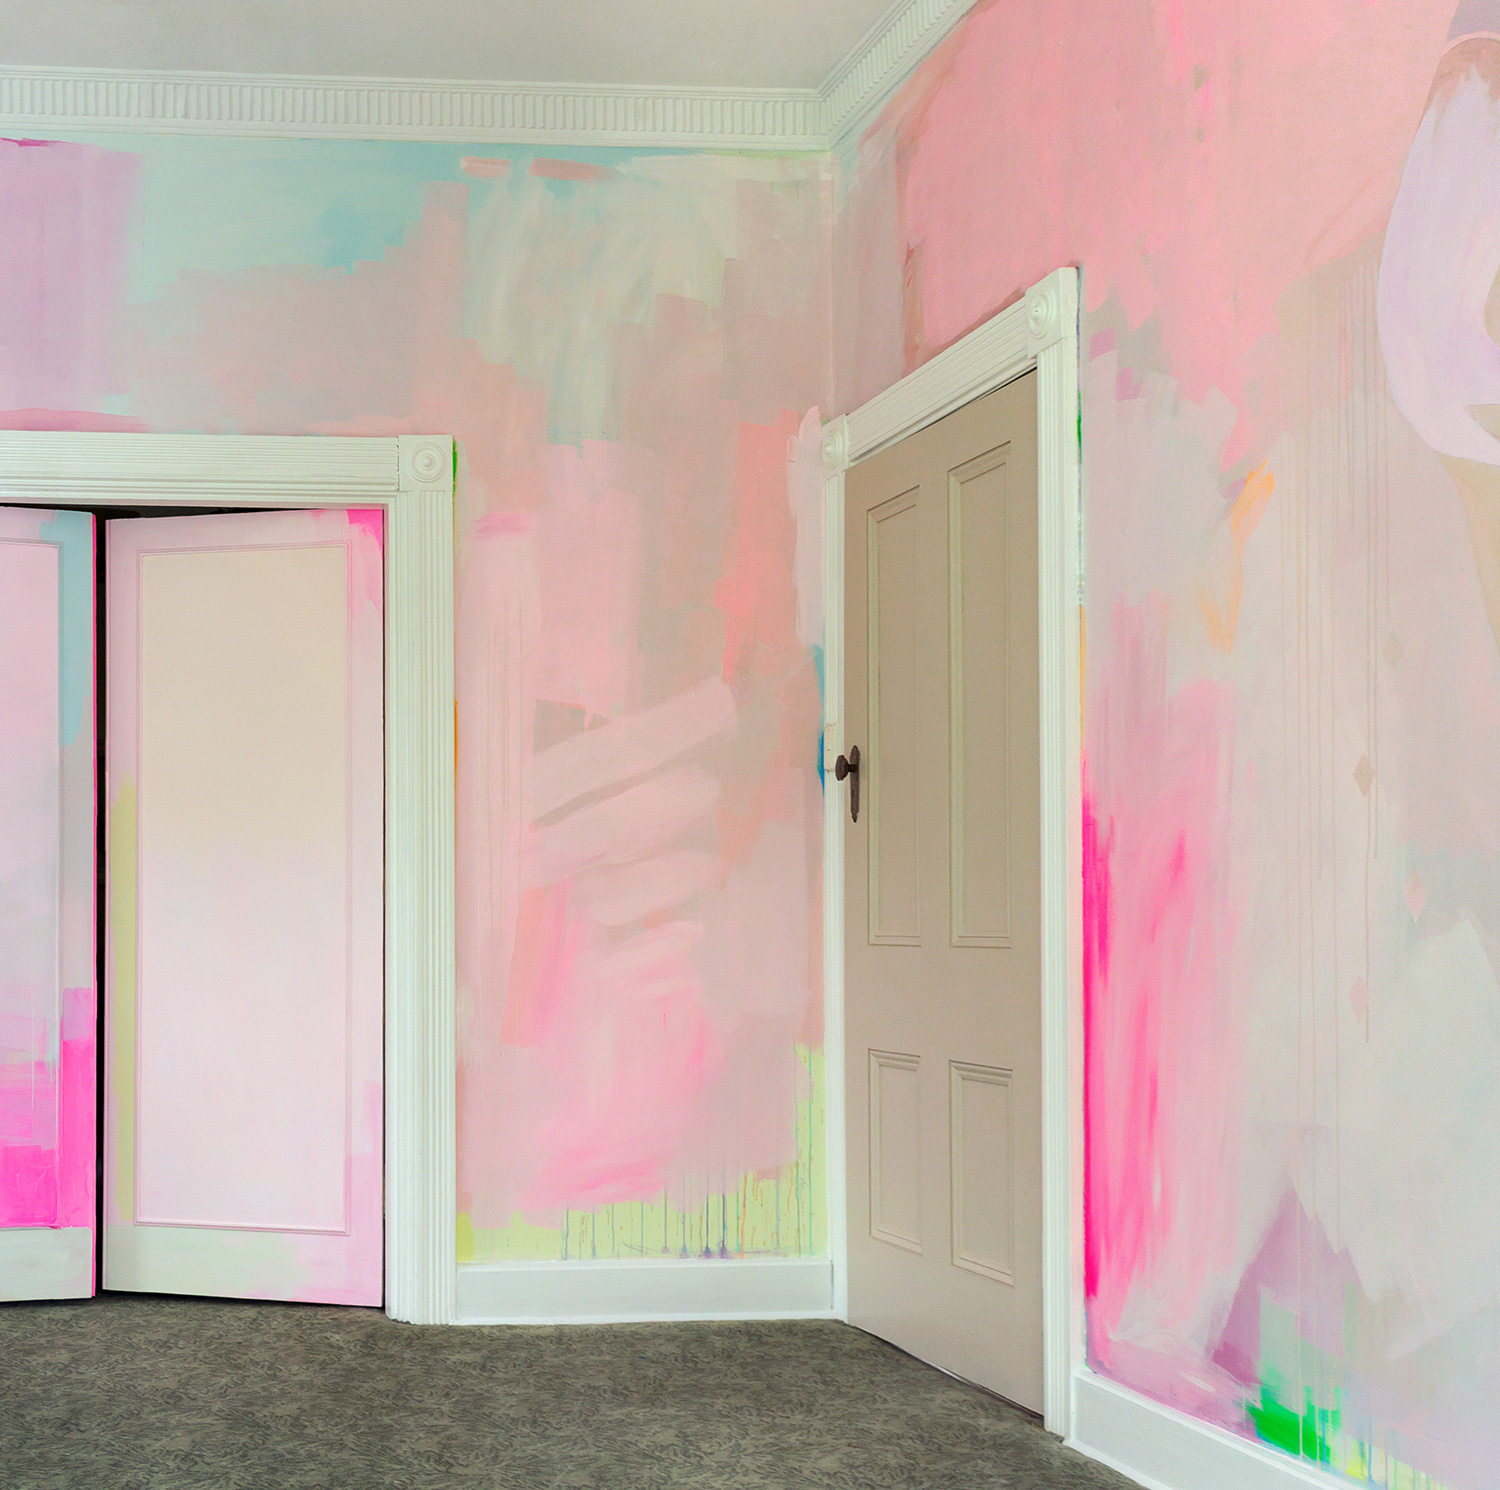 Modern abstract mural features splashes of pastel paint and pops of neon color.